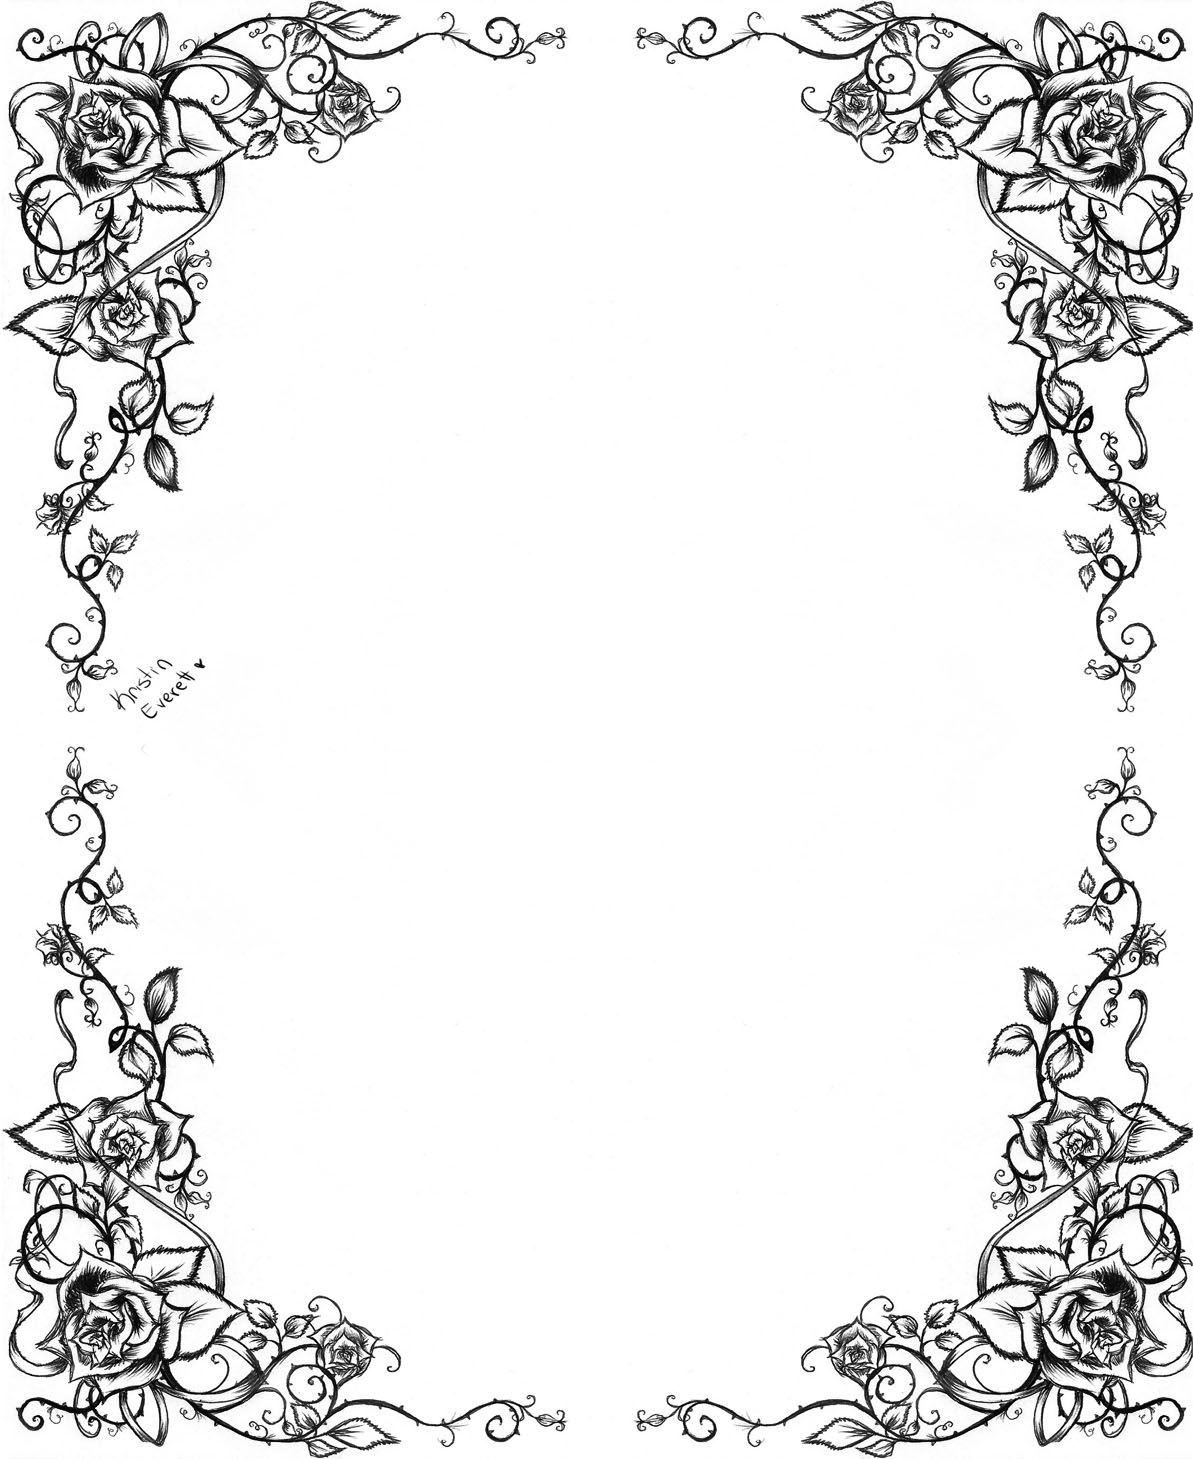 Another Rose Border Calligraphy Borders Clip Art Borders Borders And Frames